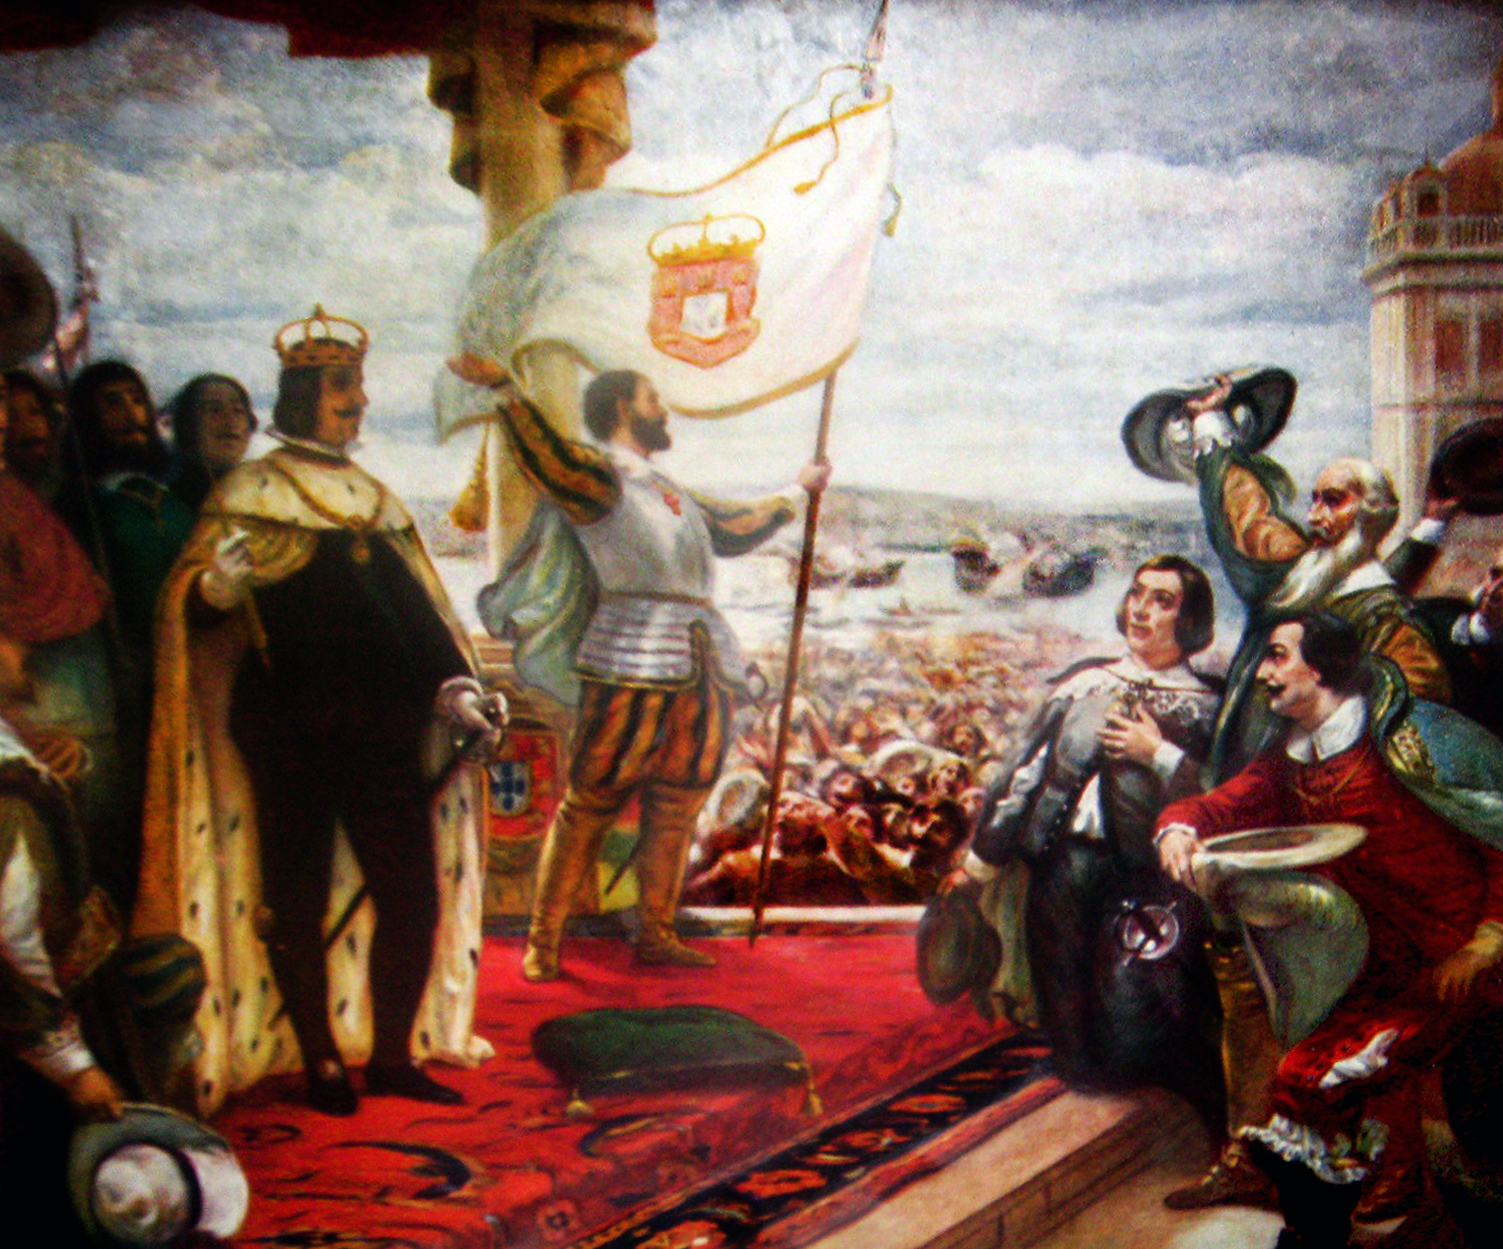 http://upload.wikimedia.org/wikipedia/commons/8/8f/Joao_IV_proclaimed_king.jpg